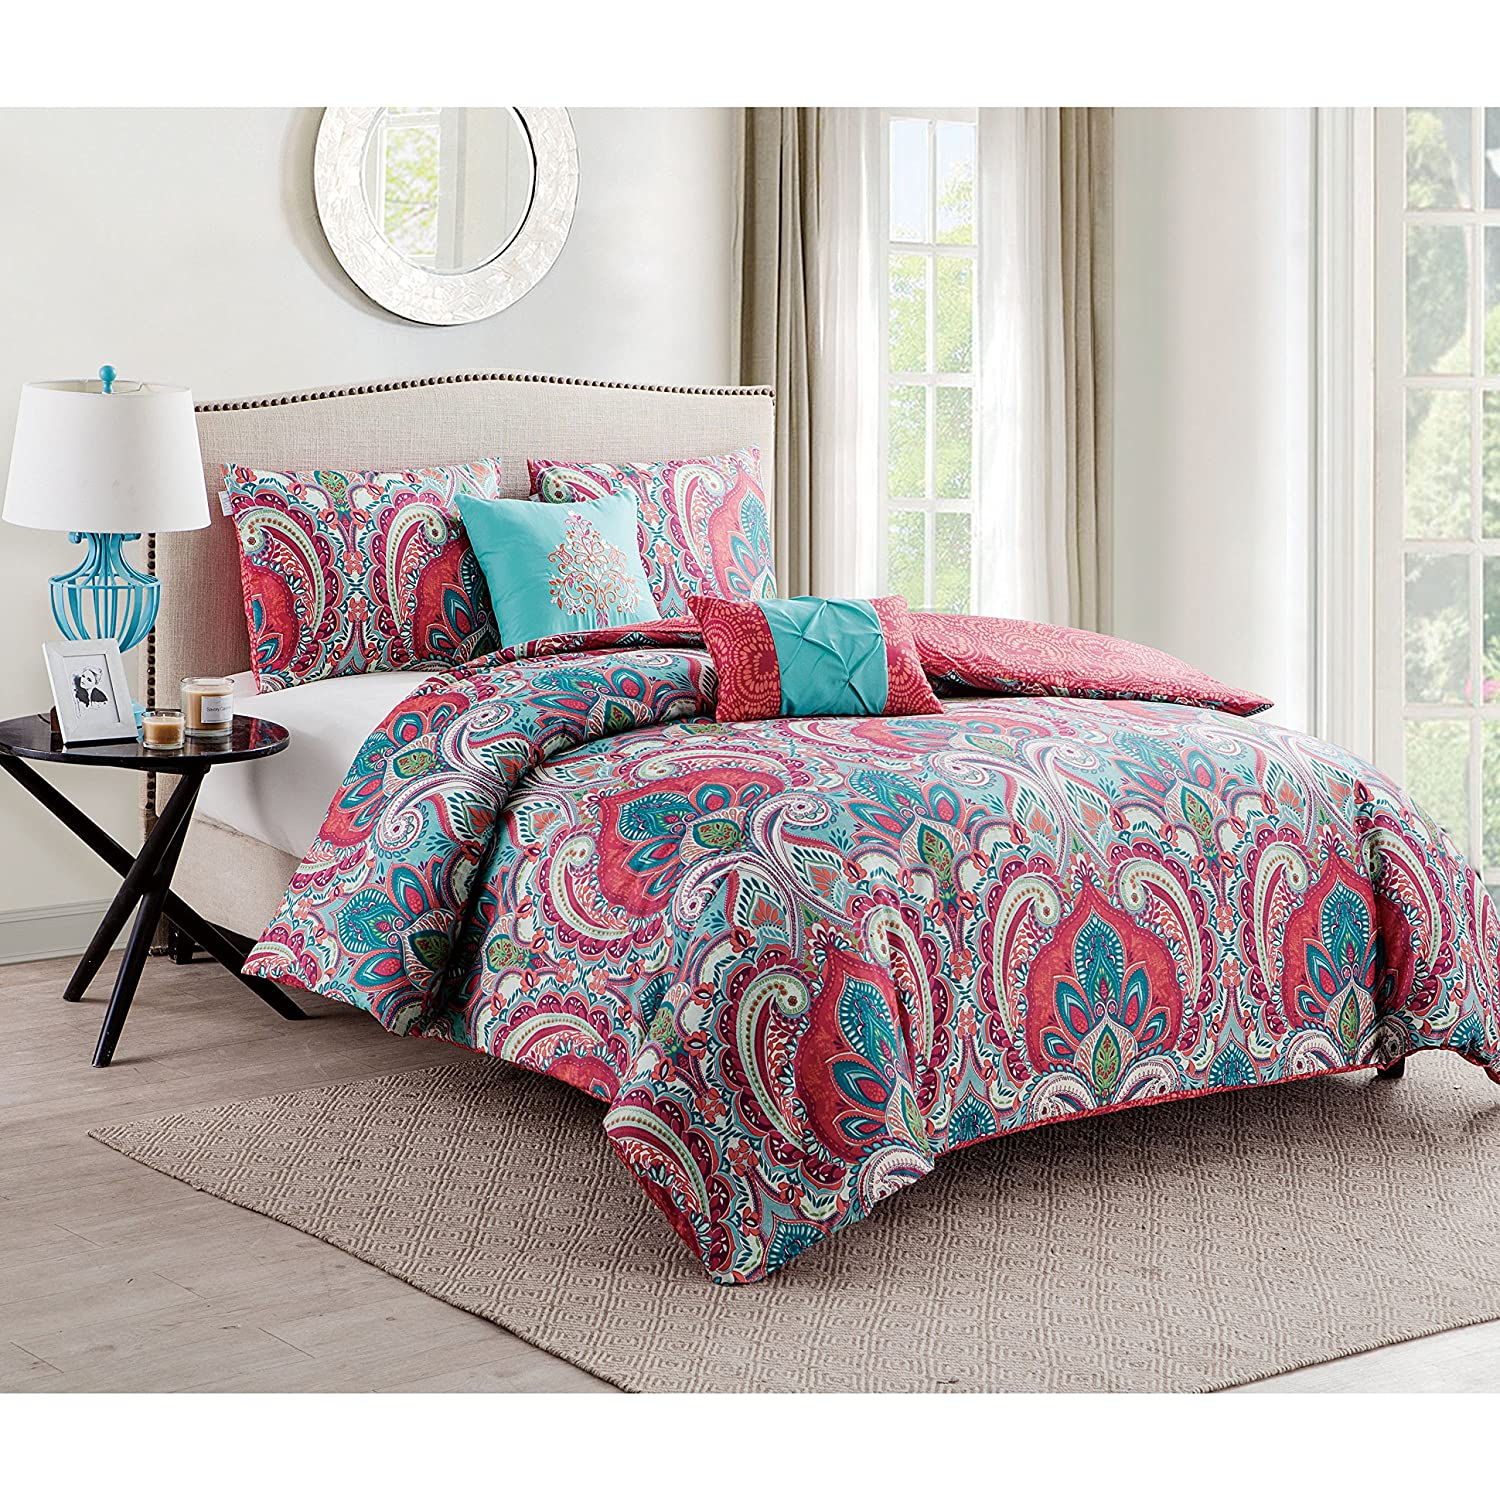 amazoncom vcny casa re'al comforter set twin home  kitchen -